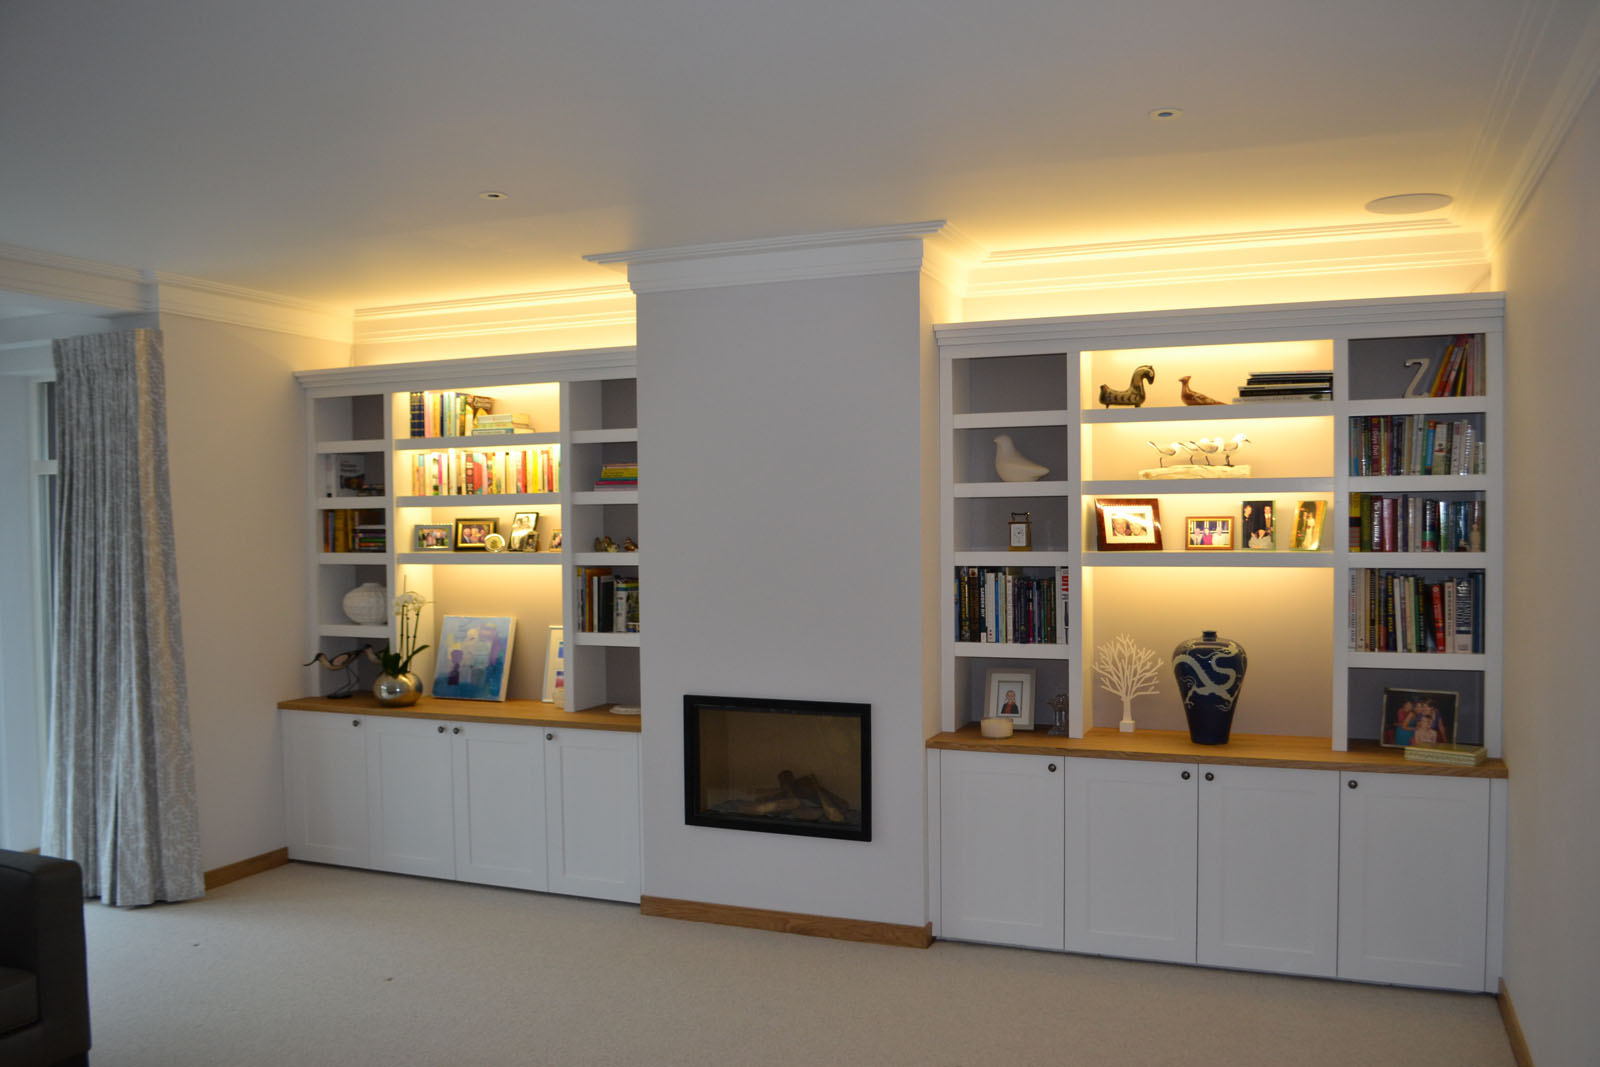 Bespoke made to measure fitted storage units & Acorn Bespoke Carpentry - Bespoke fitted furniture Surrey Sussex